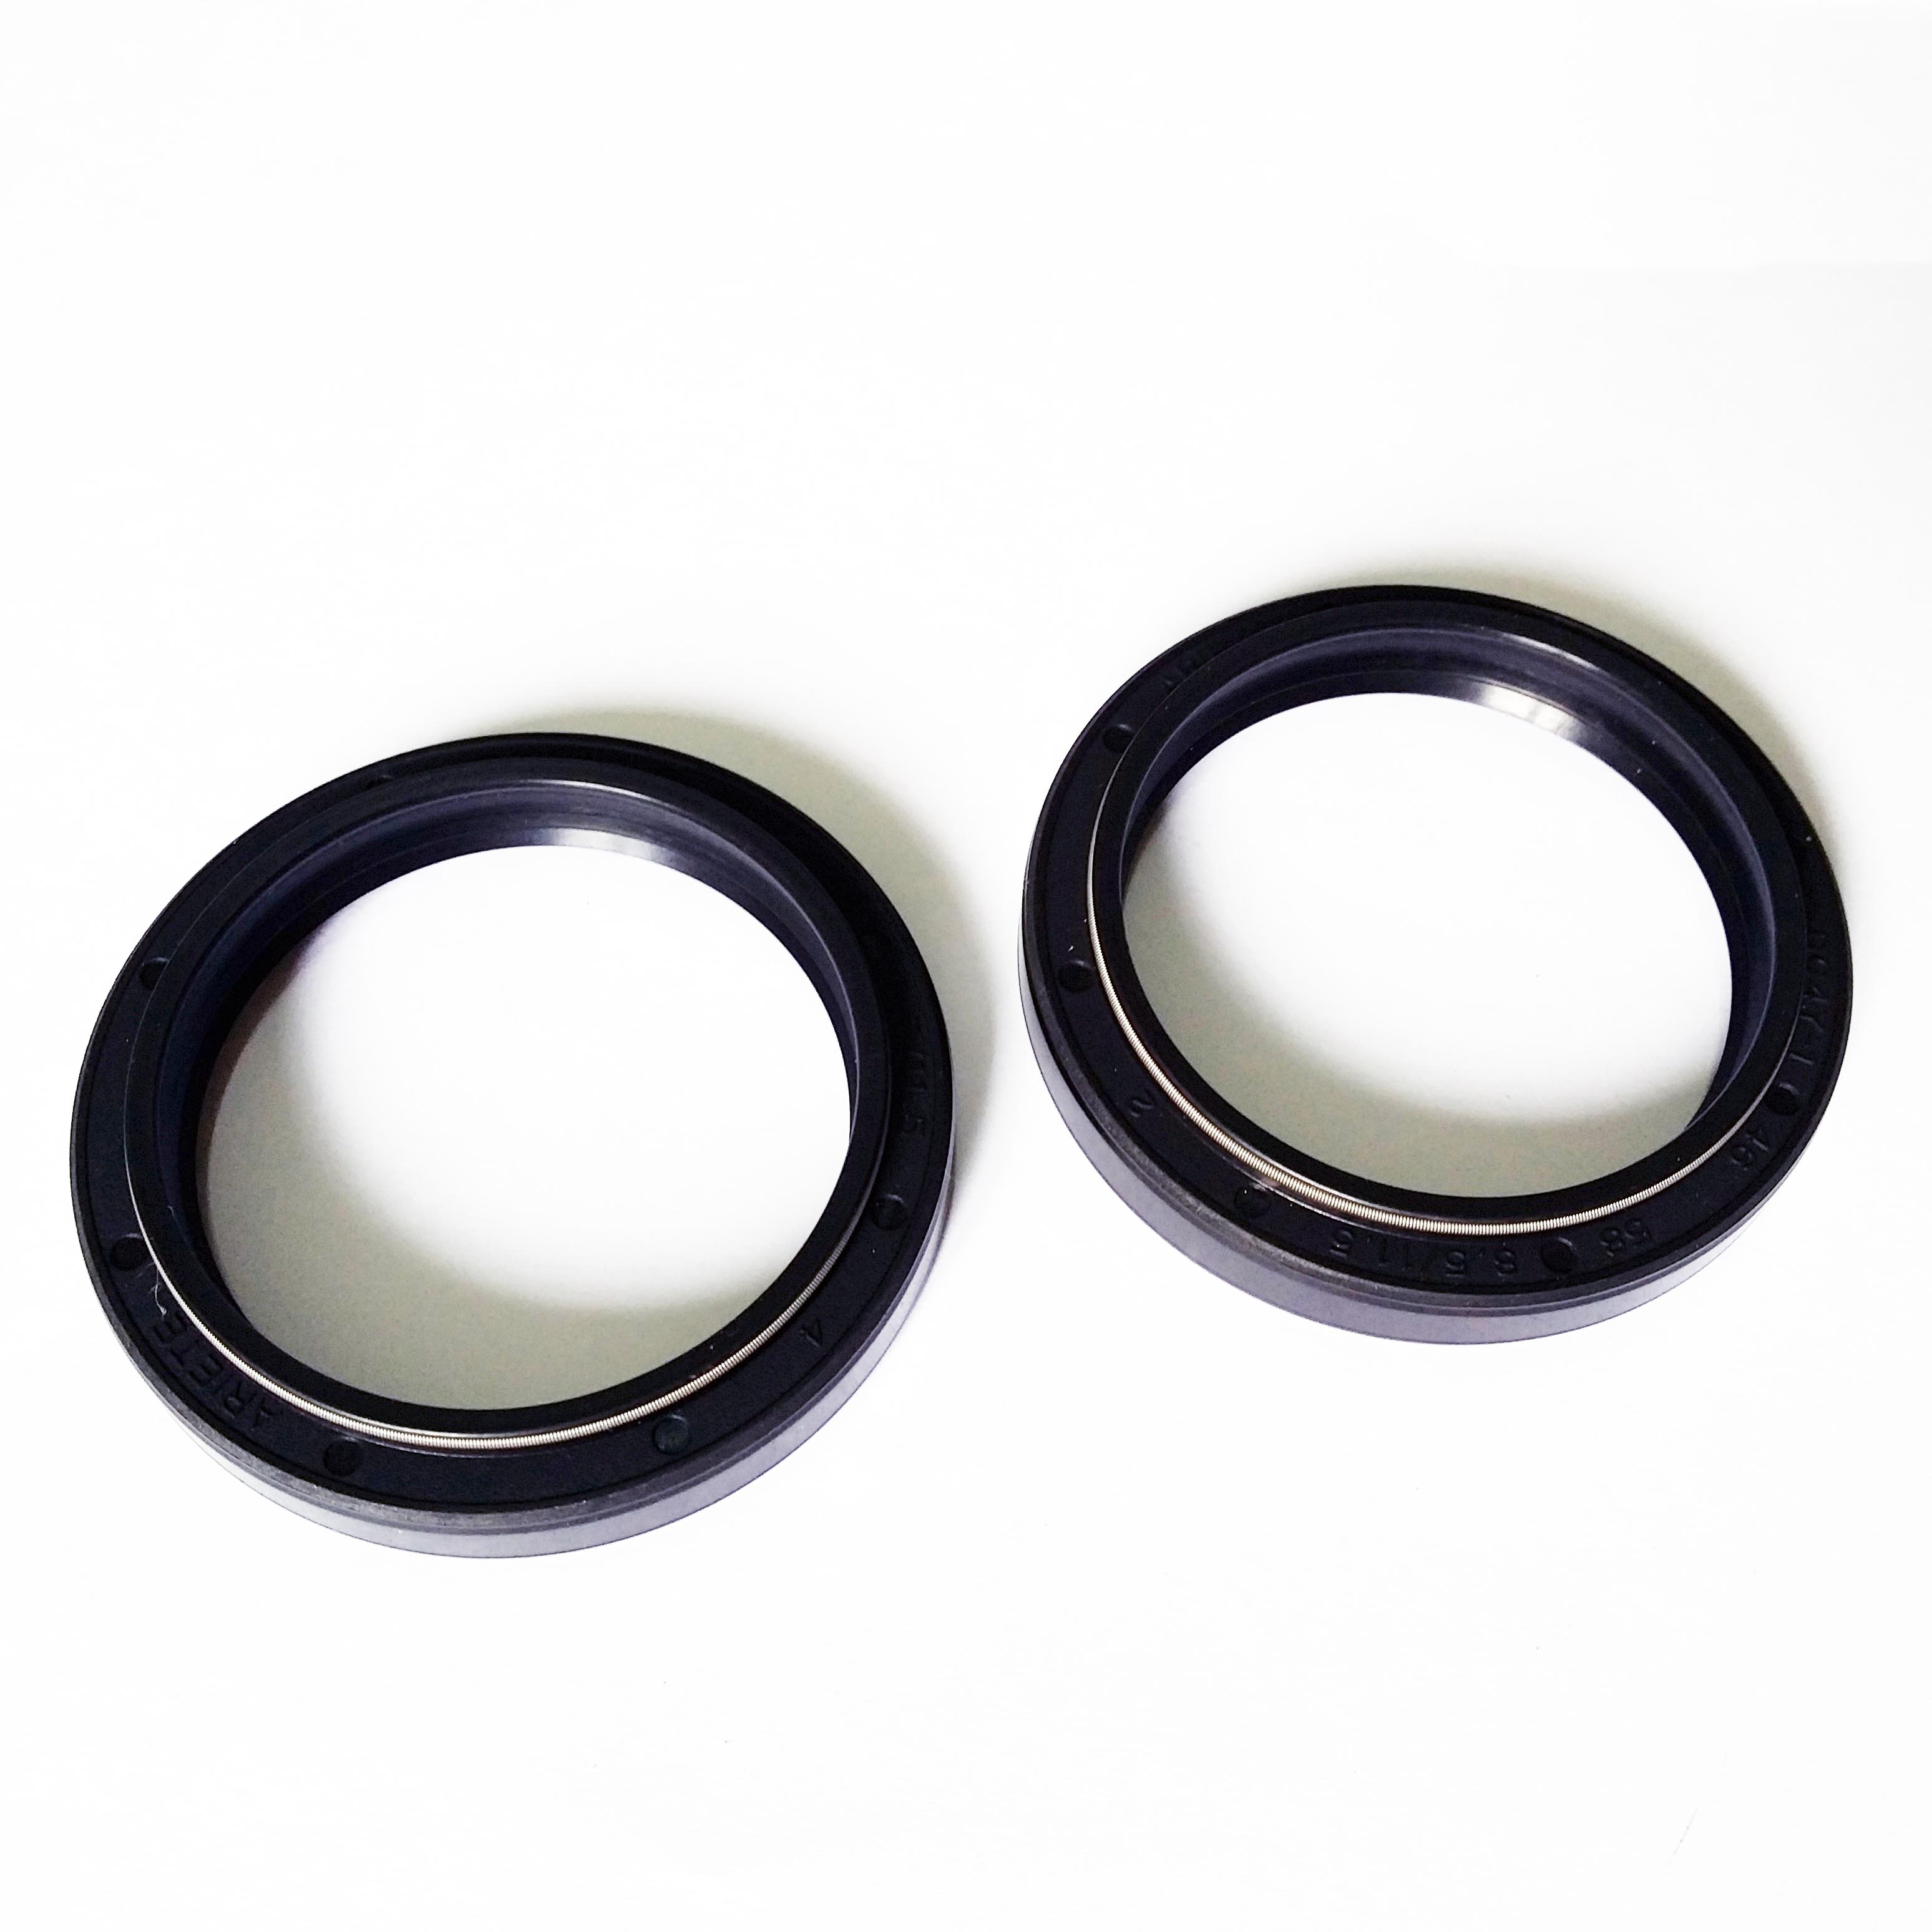 K-Tech Kawasaki KX250 2002-2008 NOK Front Fork Oil Seals